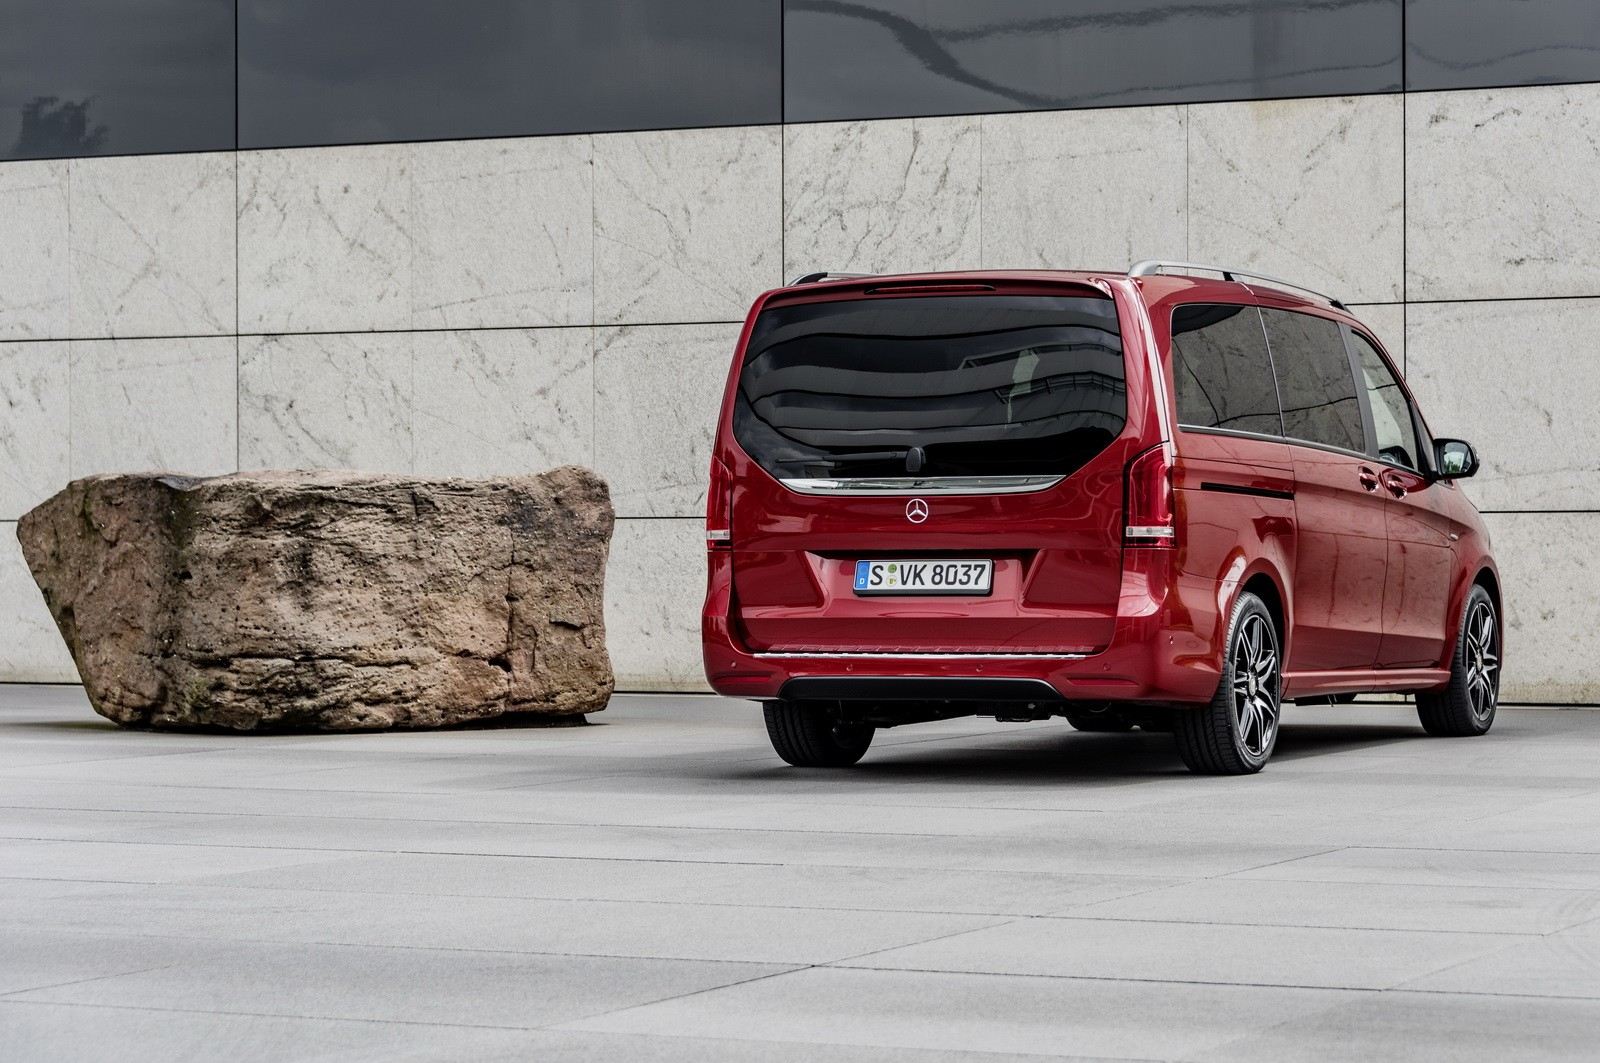 Mercedes Benz Long Beach >> Mercedes-Benz V-Class Lineup Adds Rise And Limited Models - autoevolution